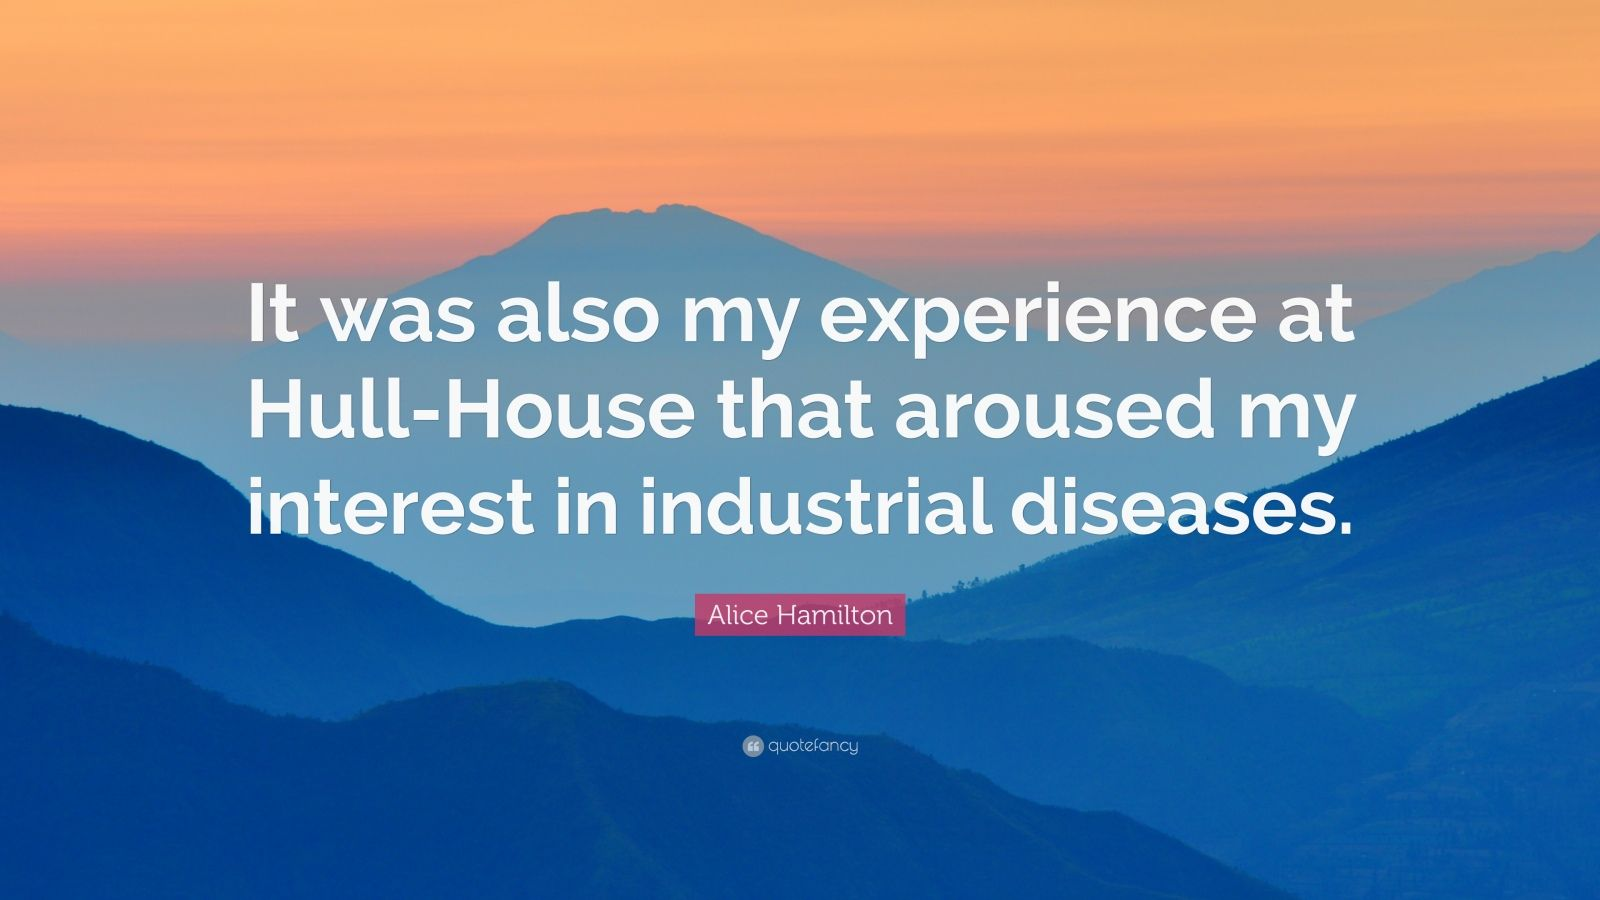 Arouse - definition of arouse by The Free Dictionary